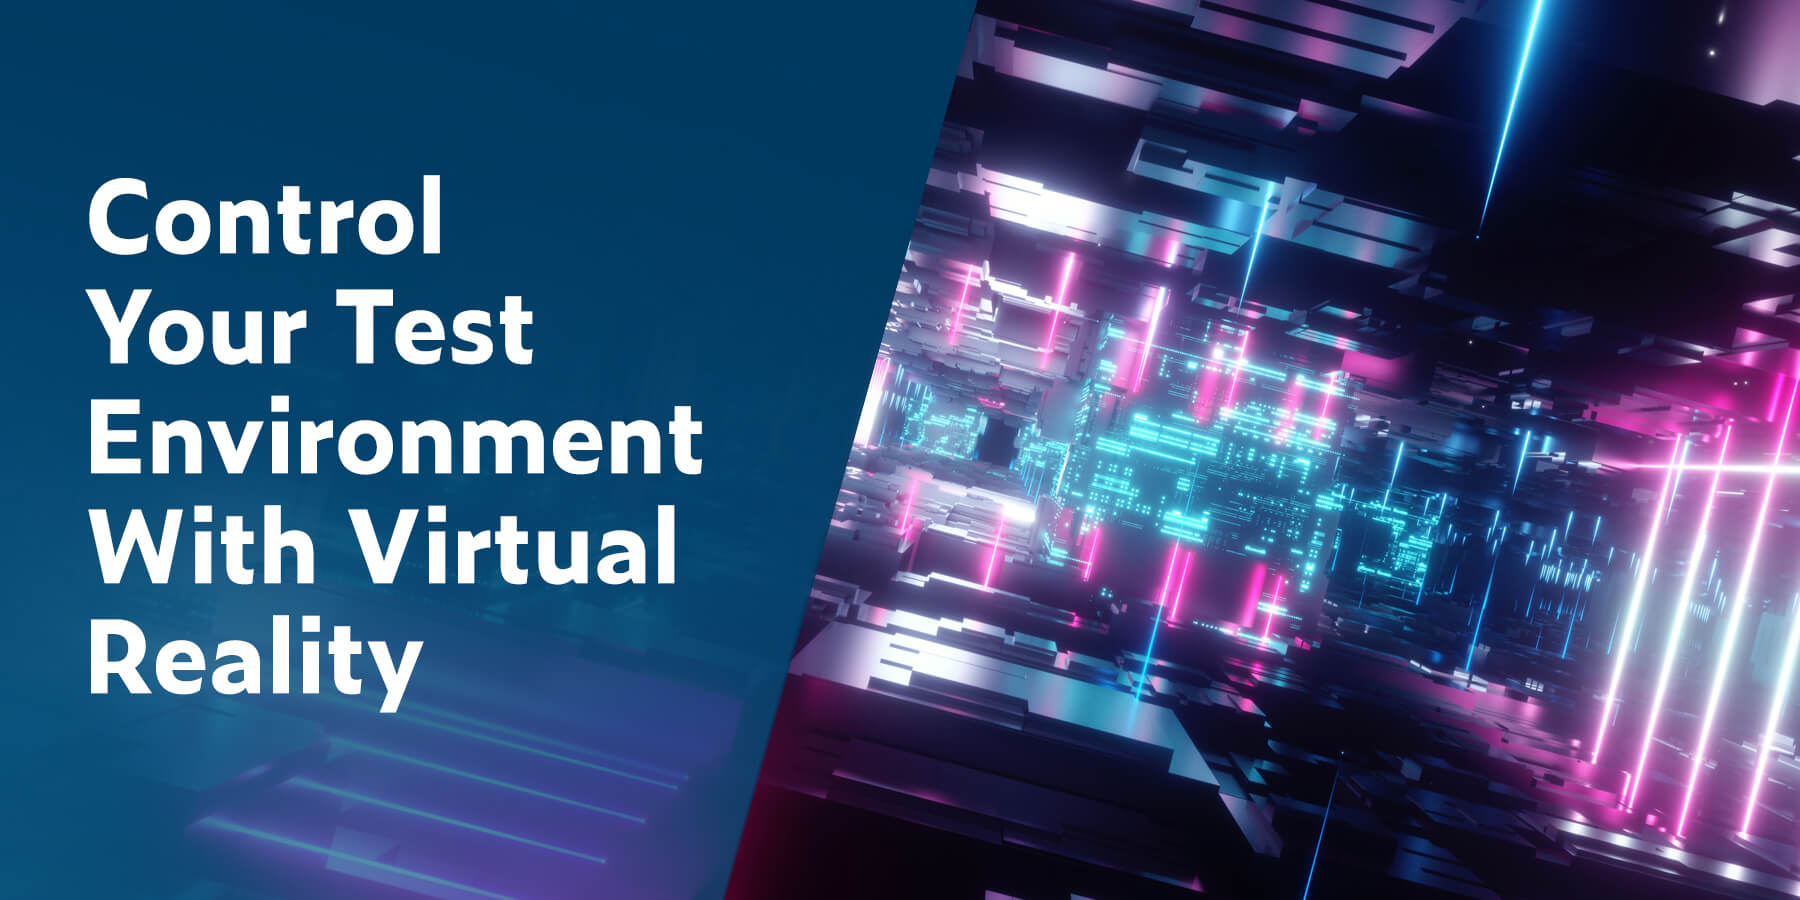 Control Your Test Environment With Virtual Reality